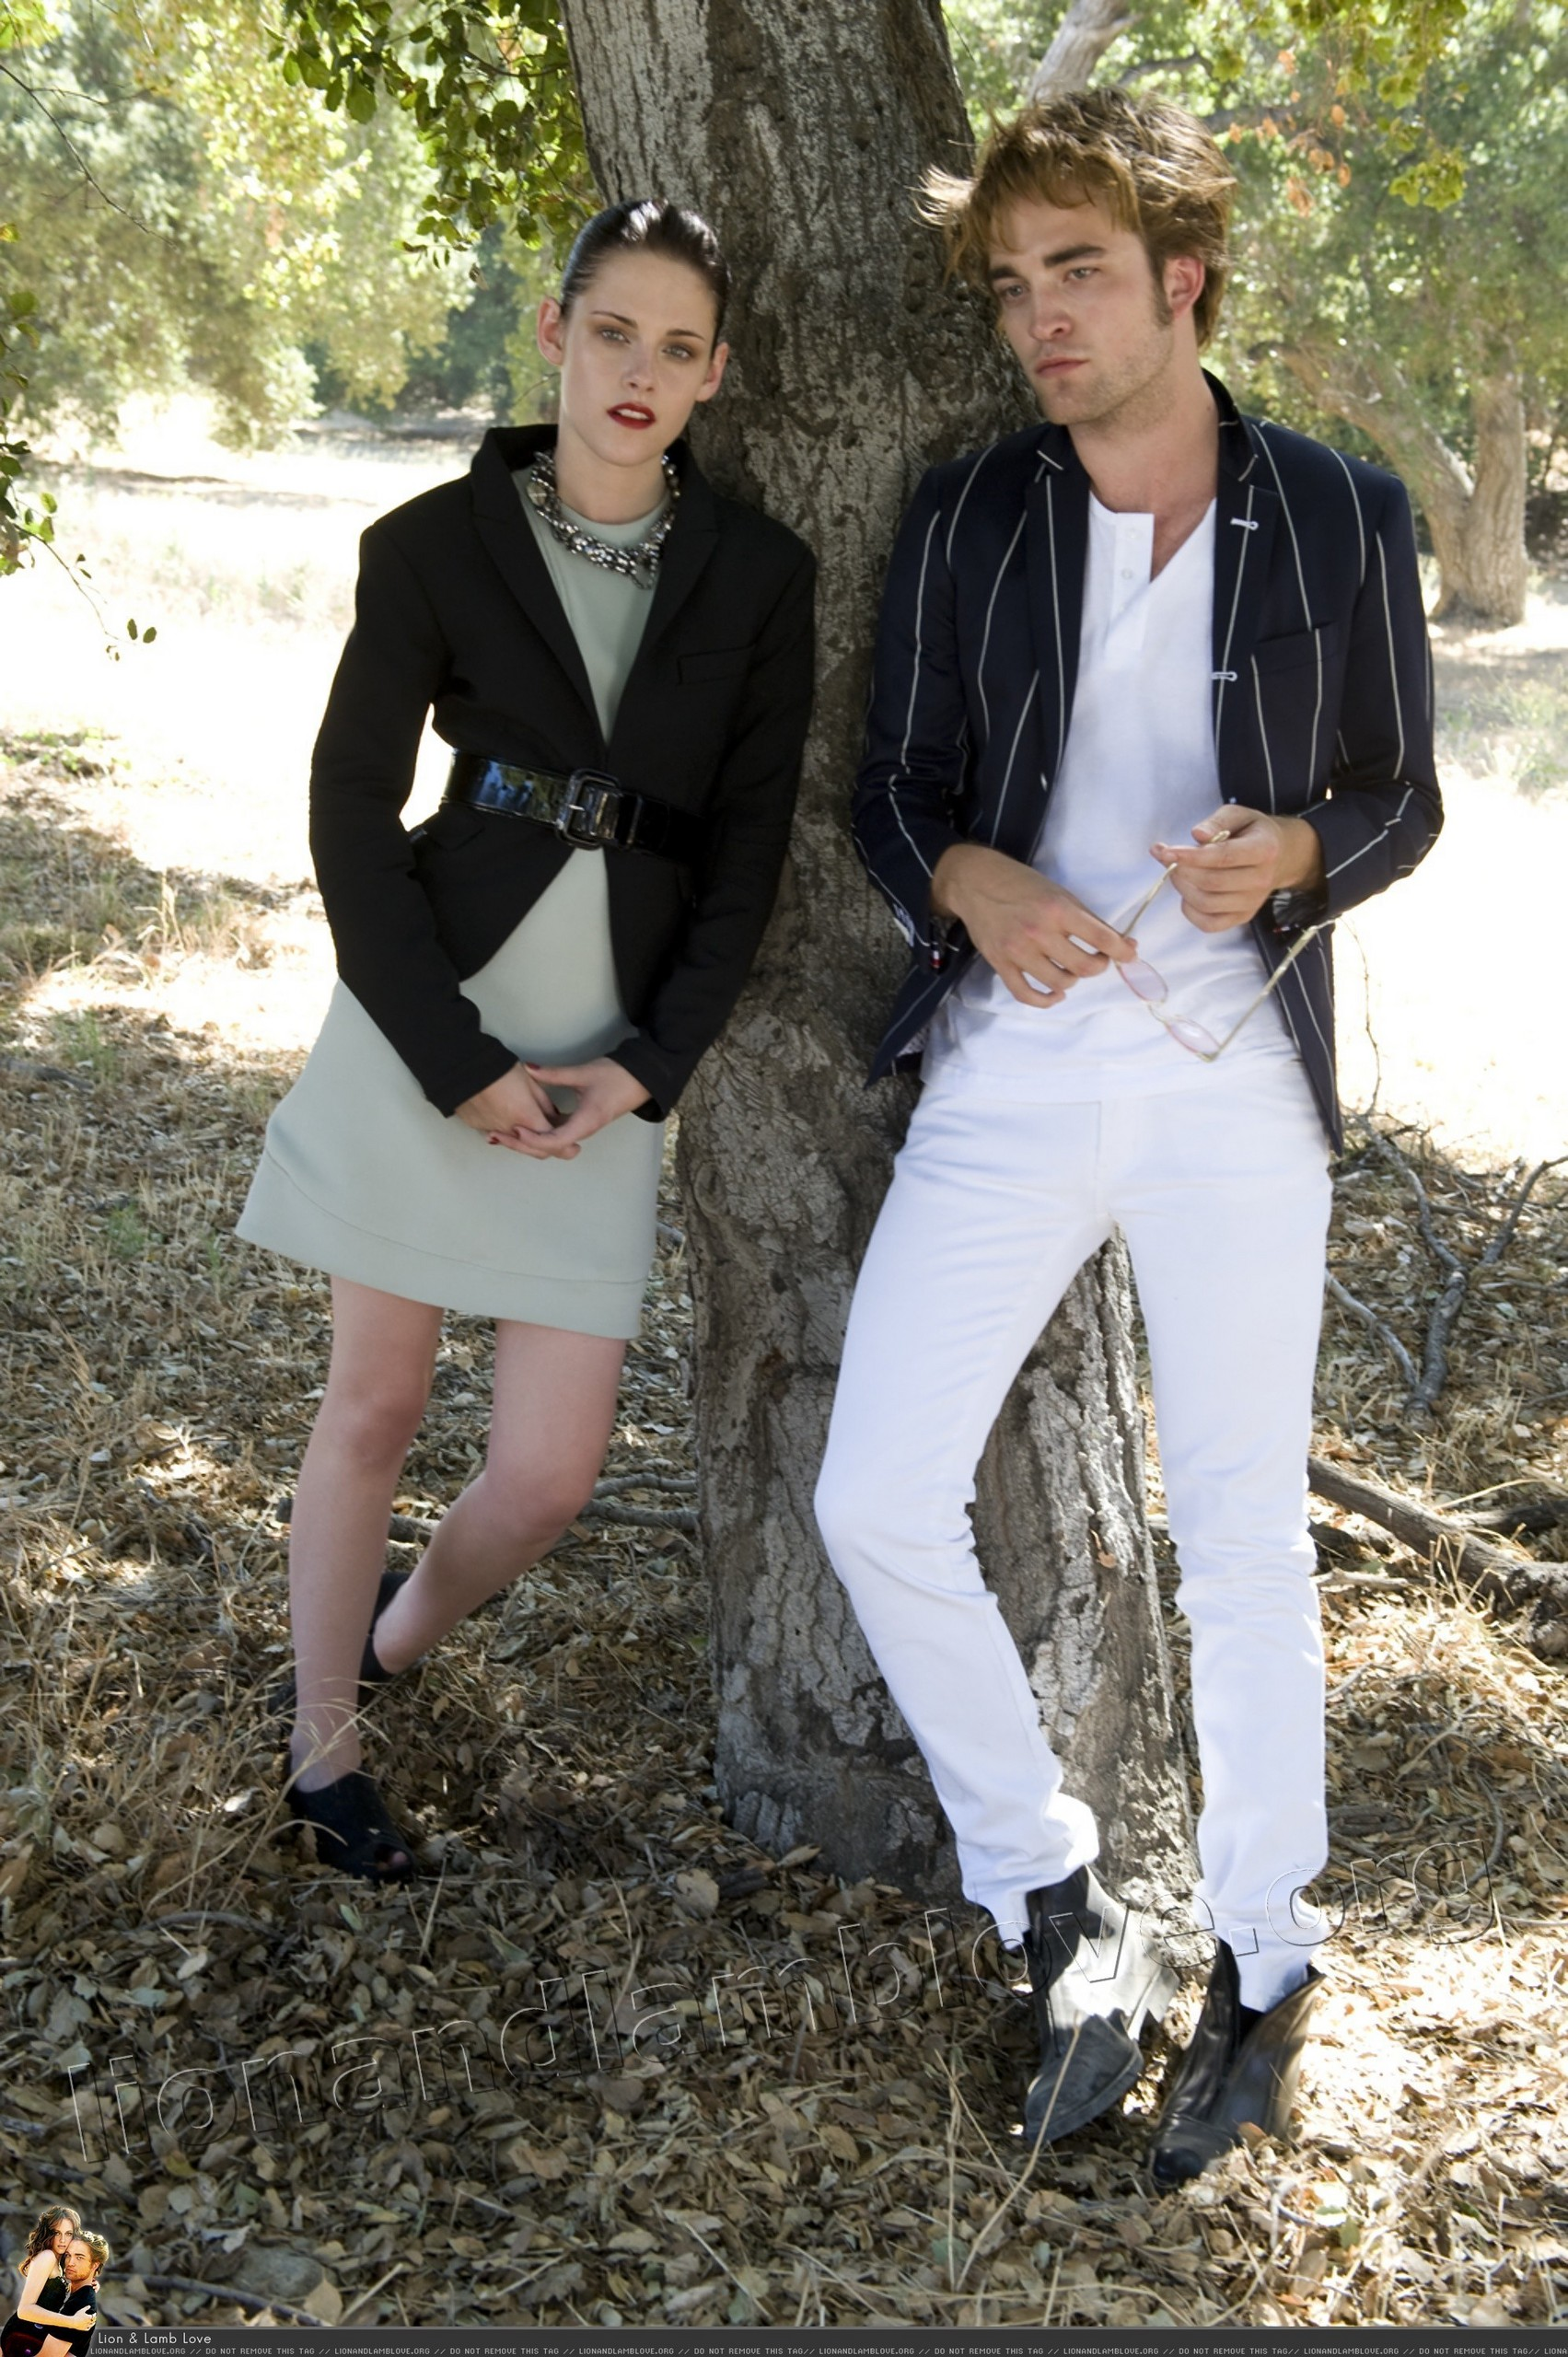 Download this Teen Vogue Robert Pattinson And Kristen Stewart picture